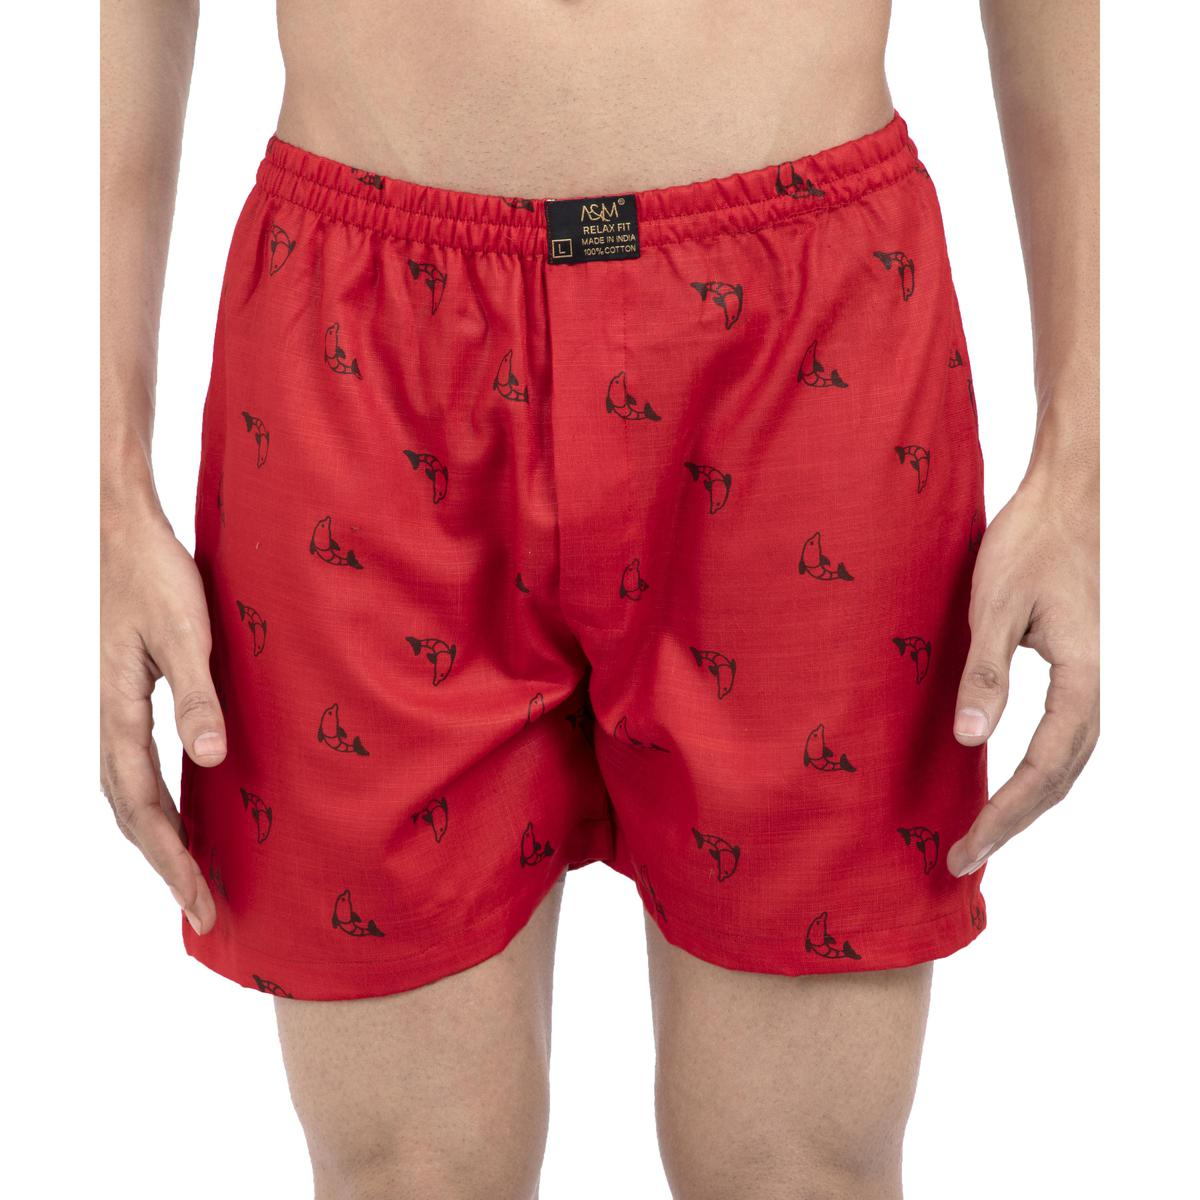 A & M - Red Men Boxer Shorts   New Boxer Shorts For Men